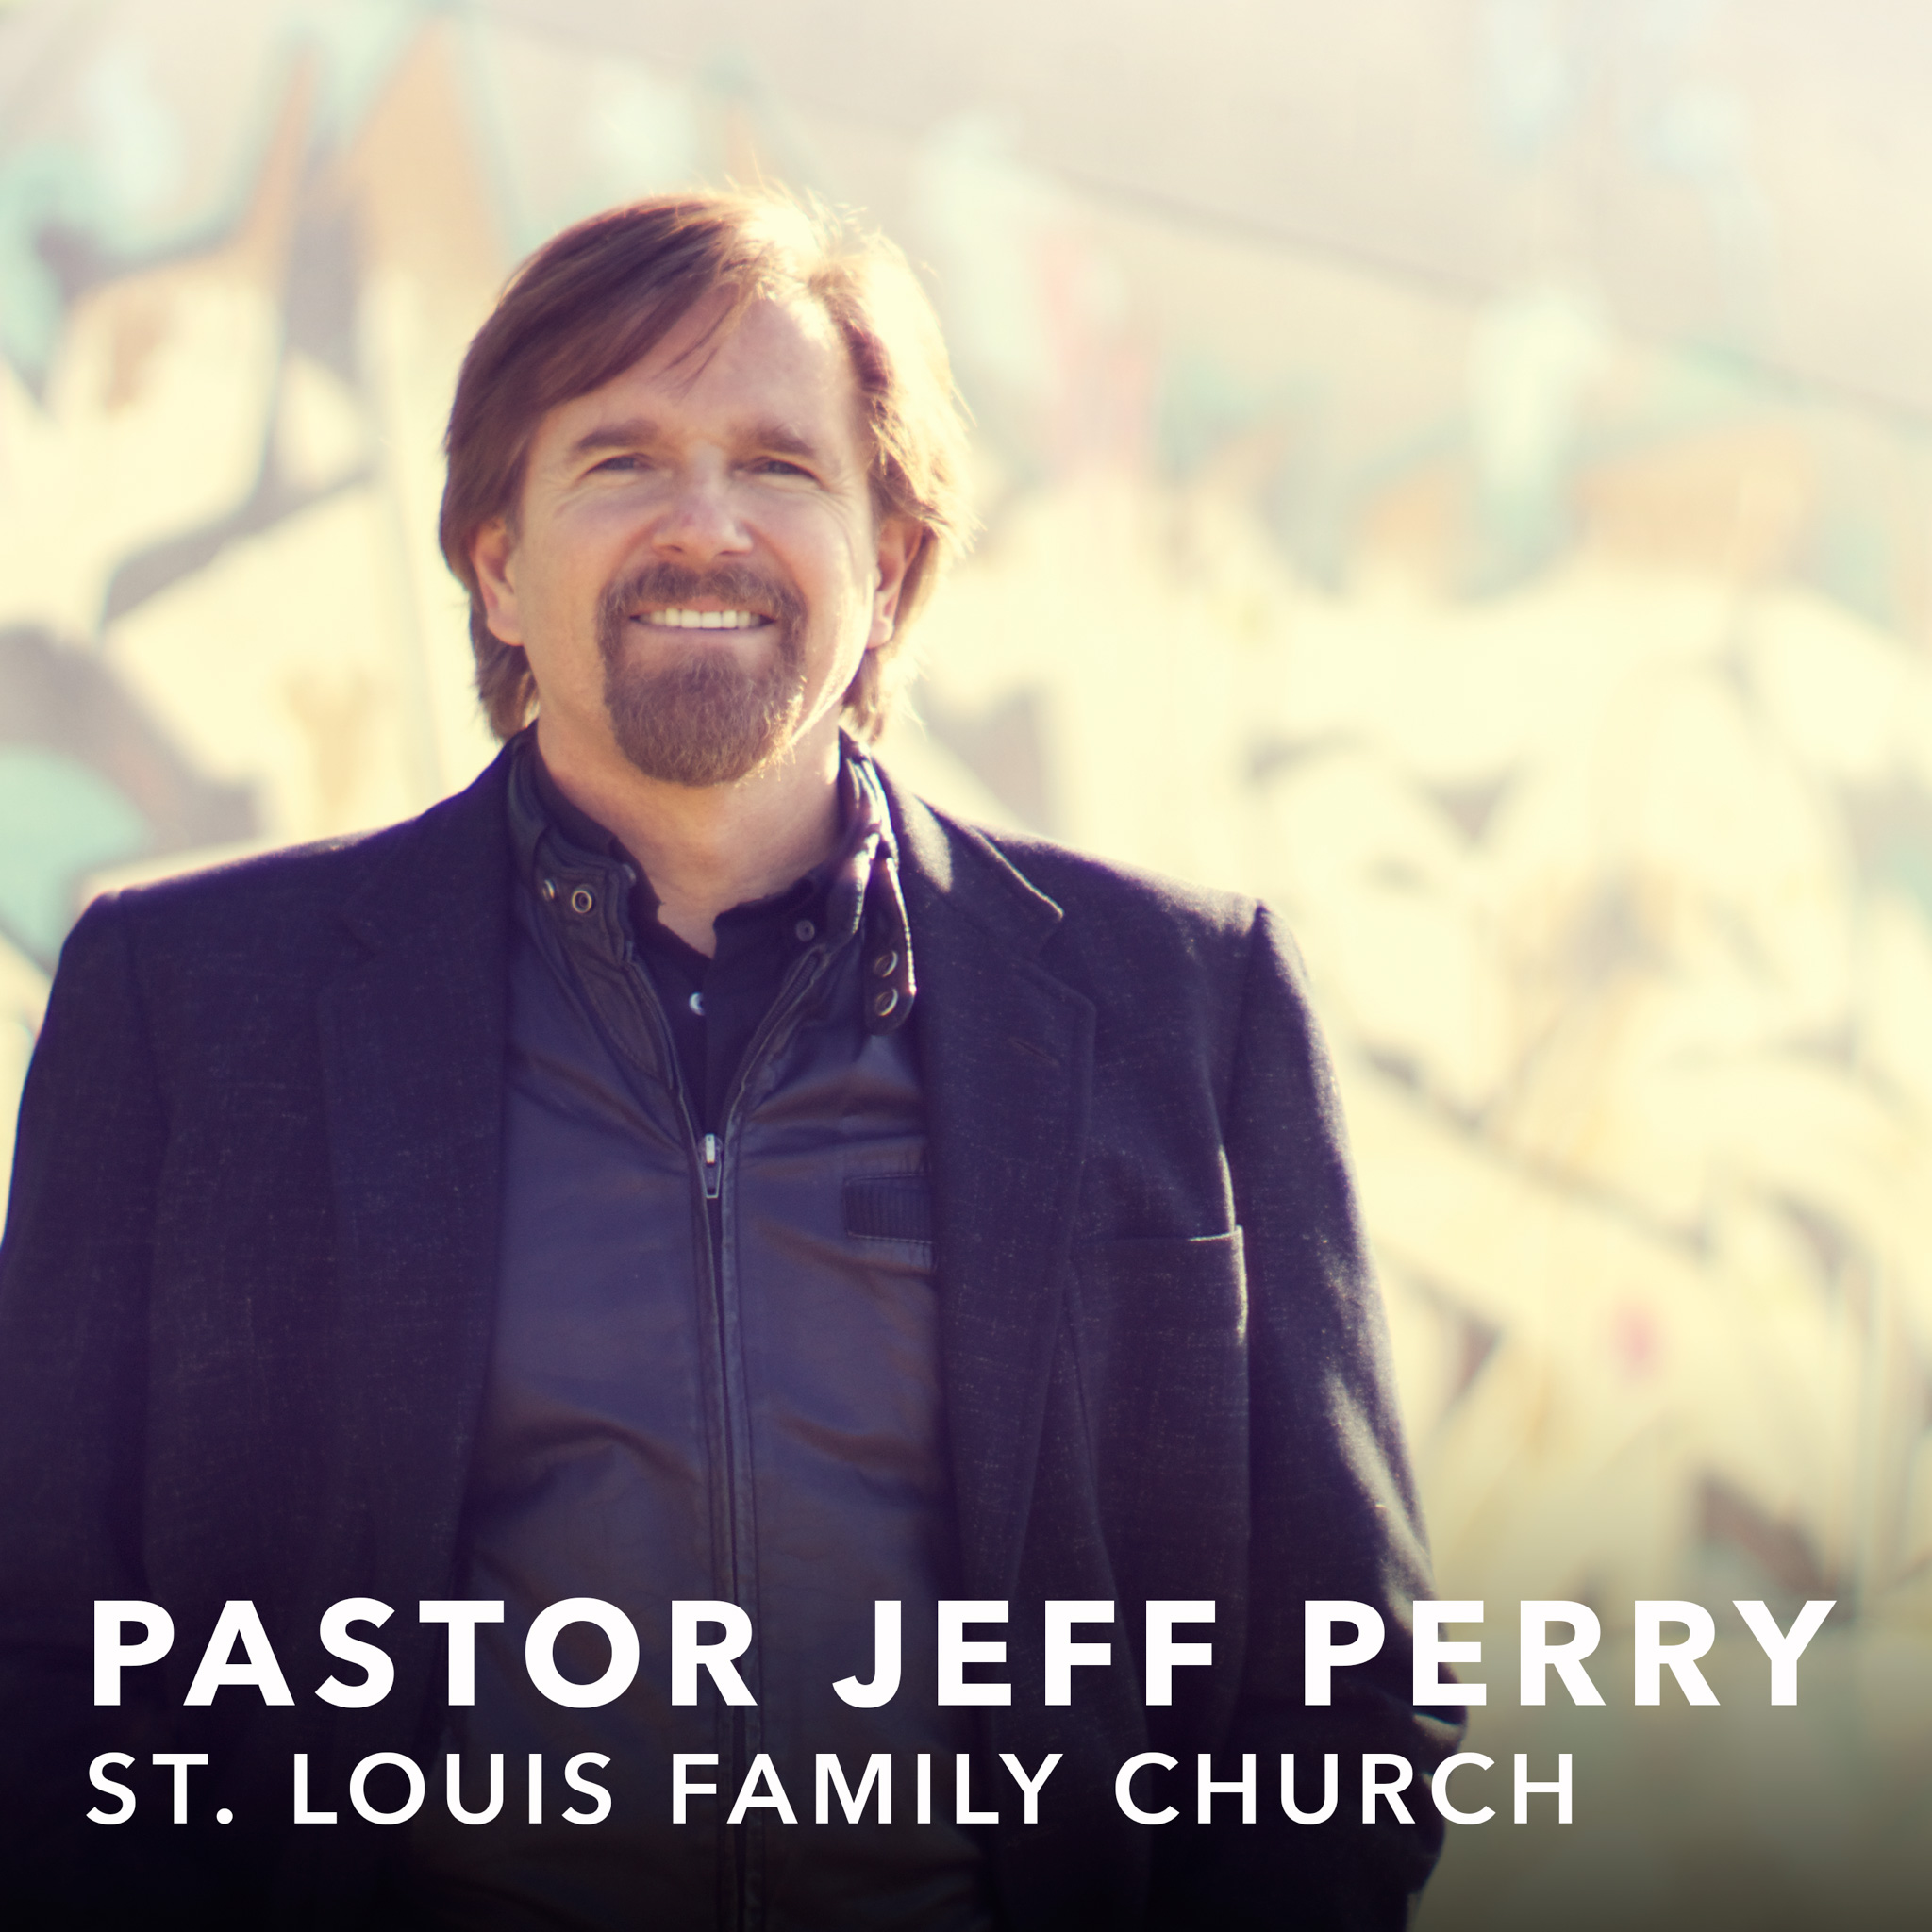 St. Louis Family Church - Pastor Jeff Perry » Podcast